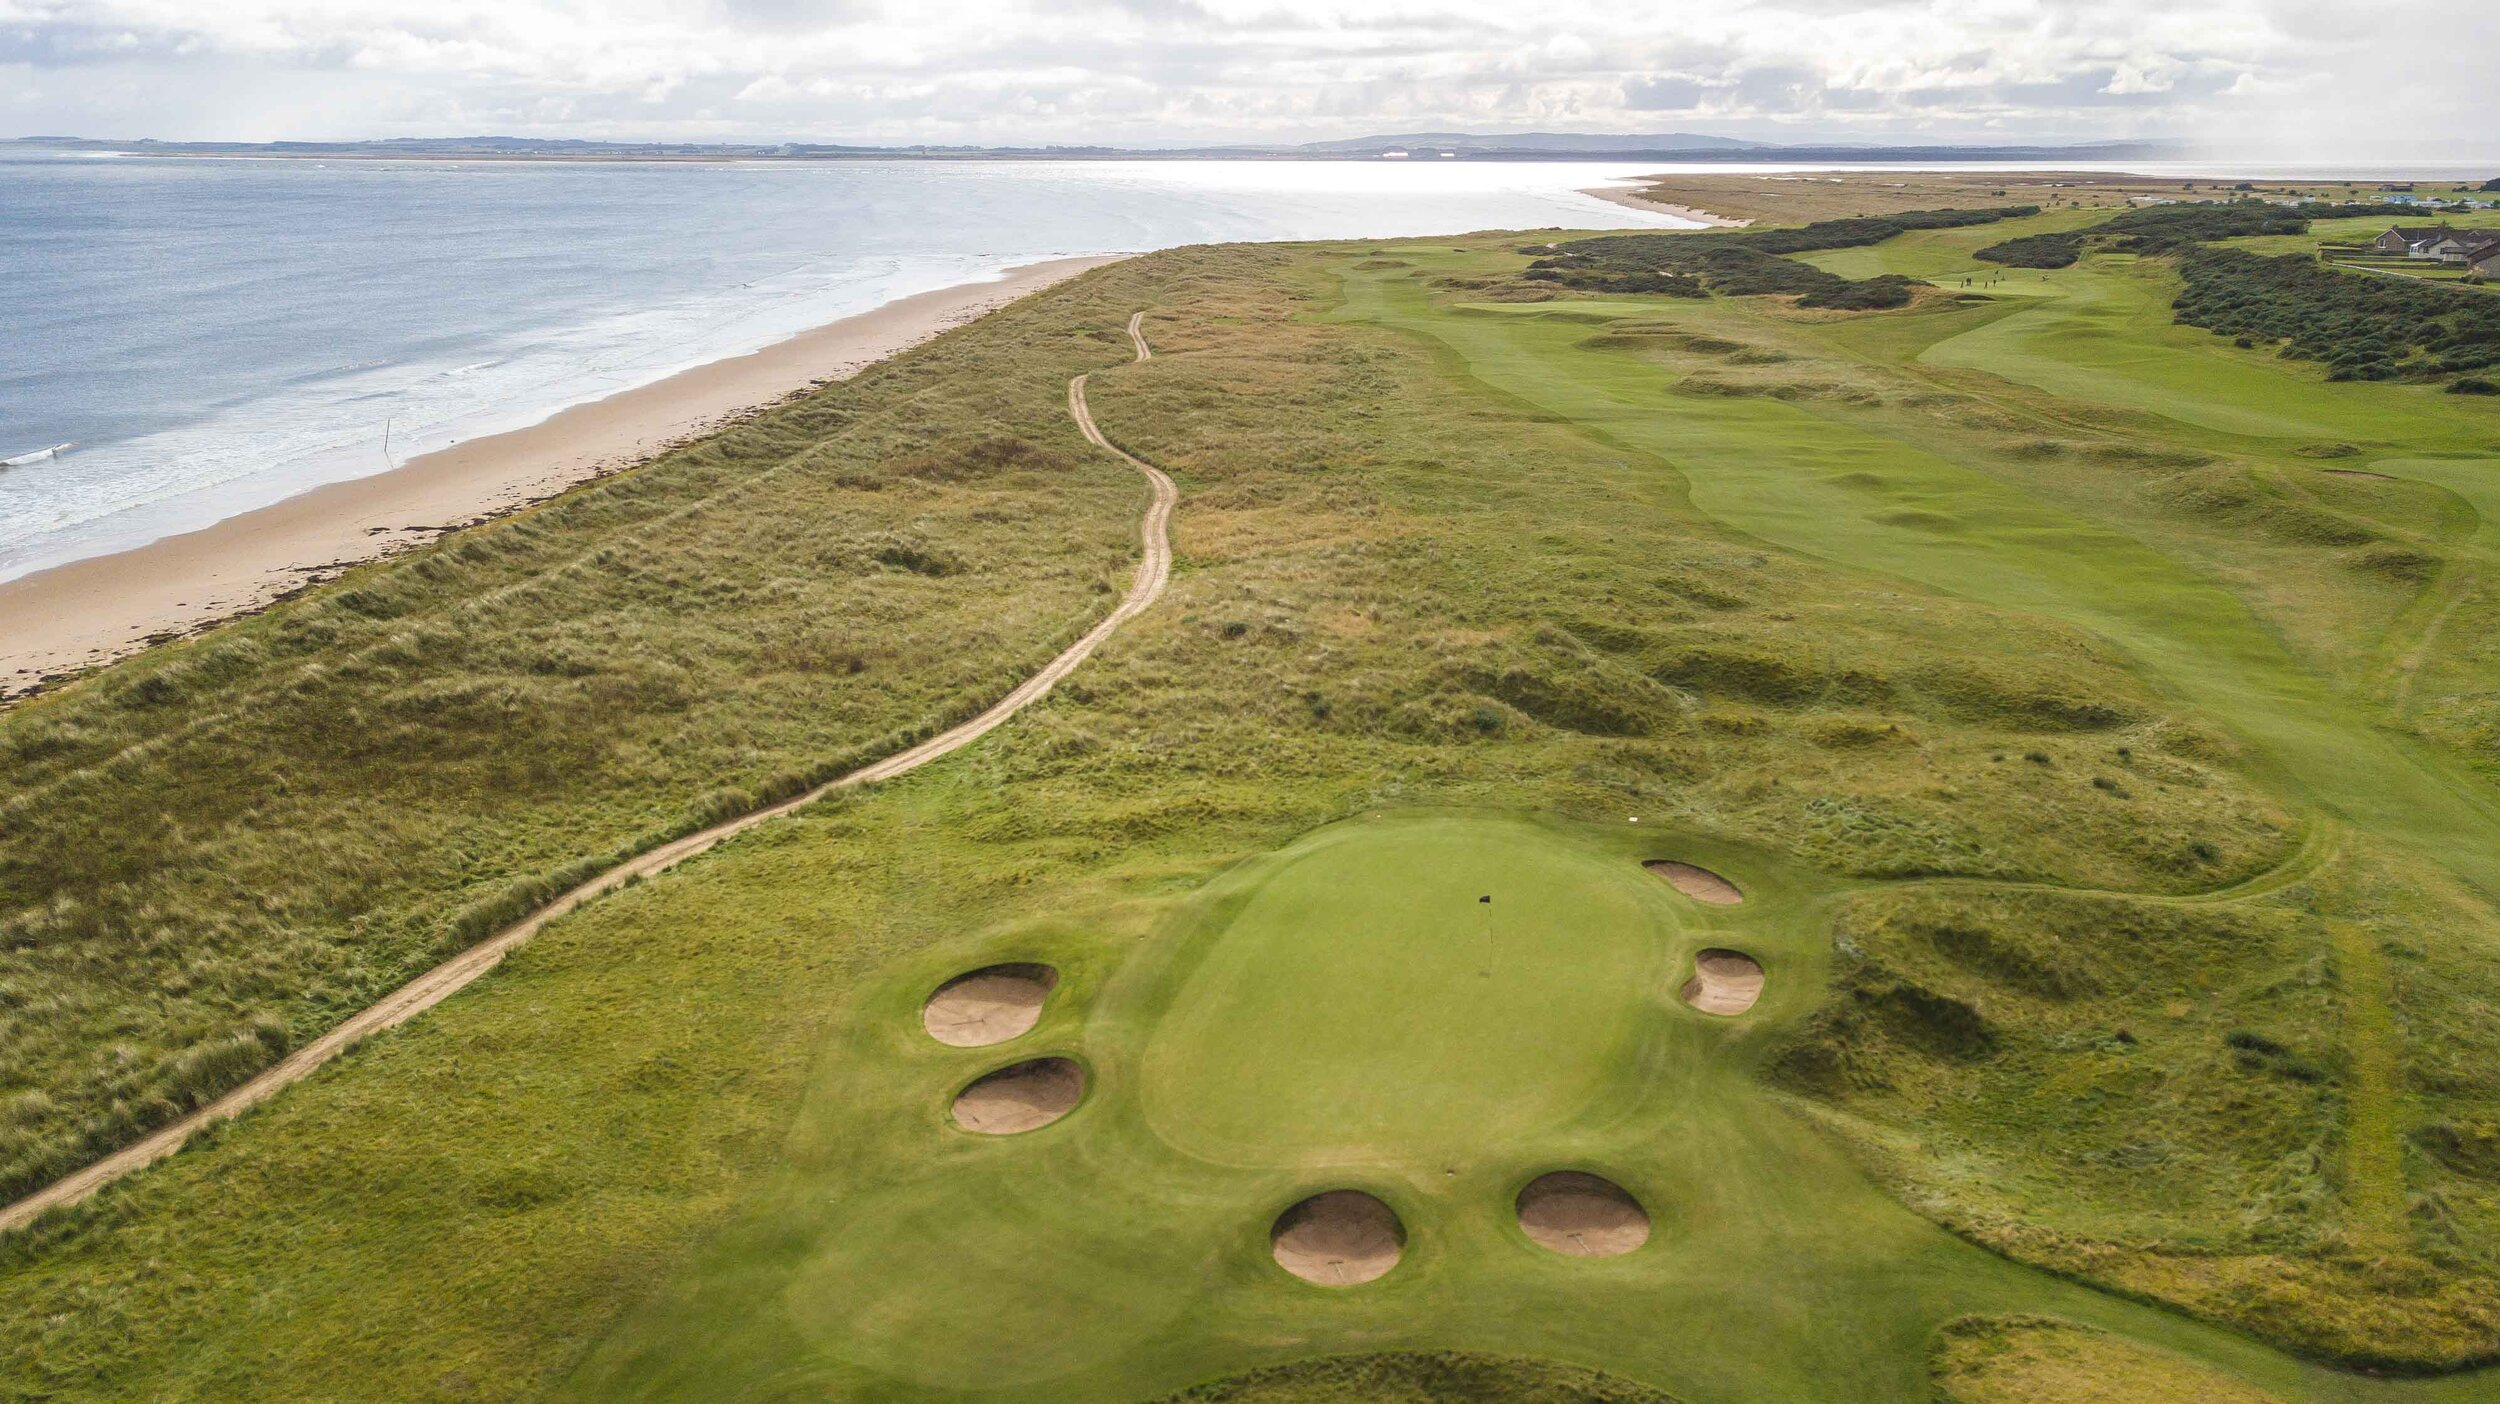 The par 3 13th hole at Royal Dornoch